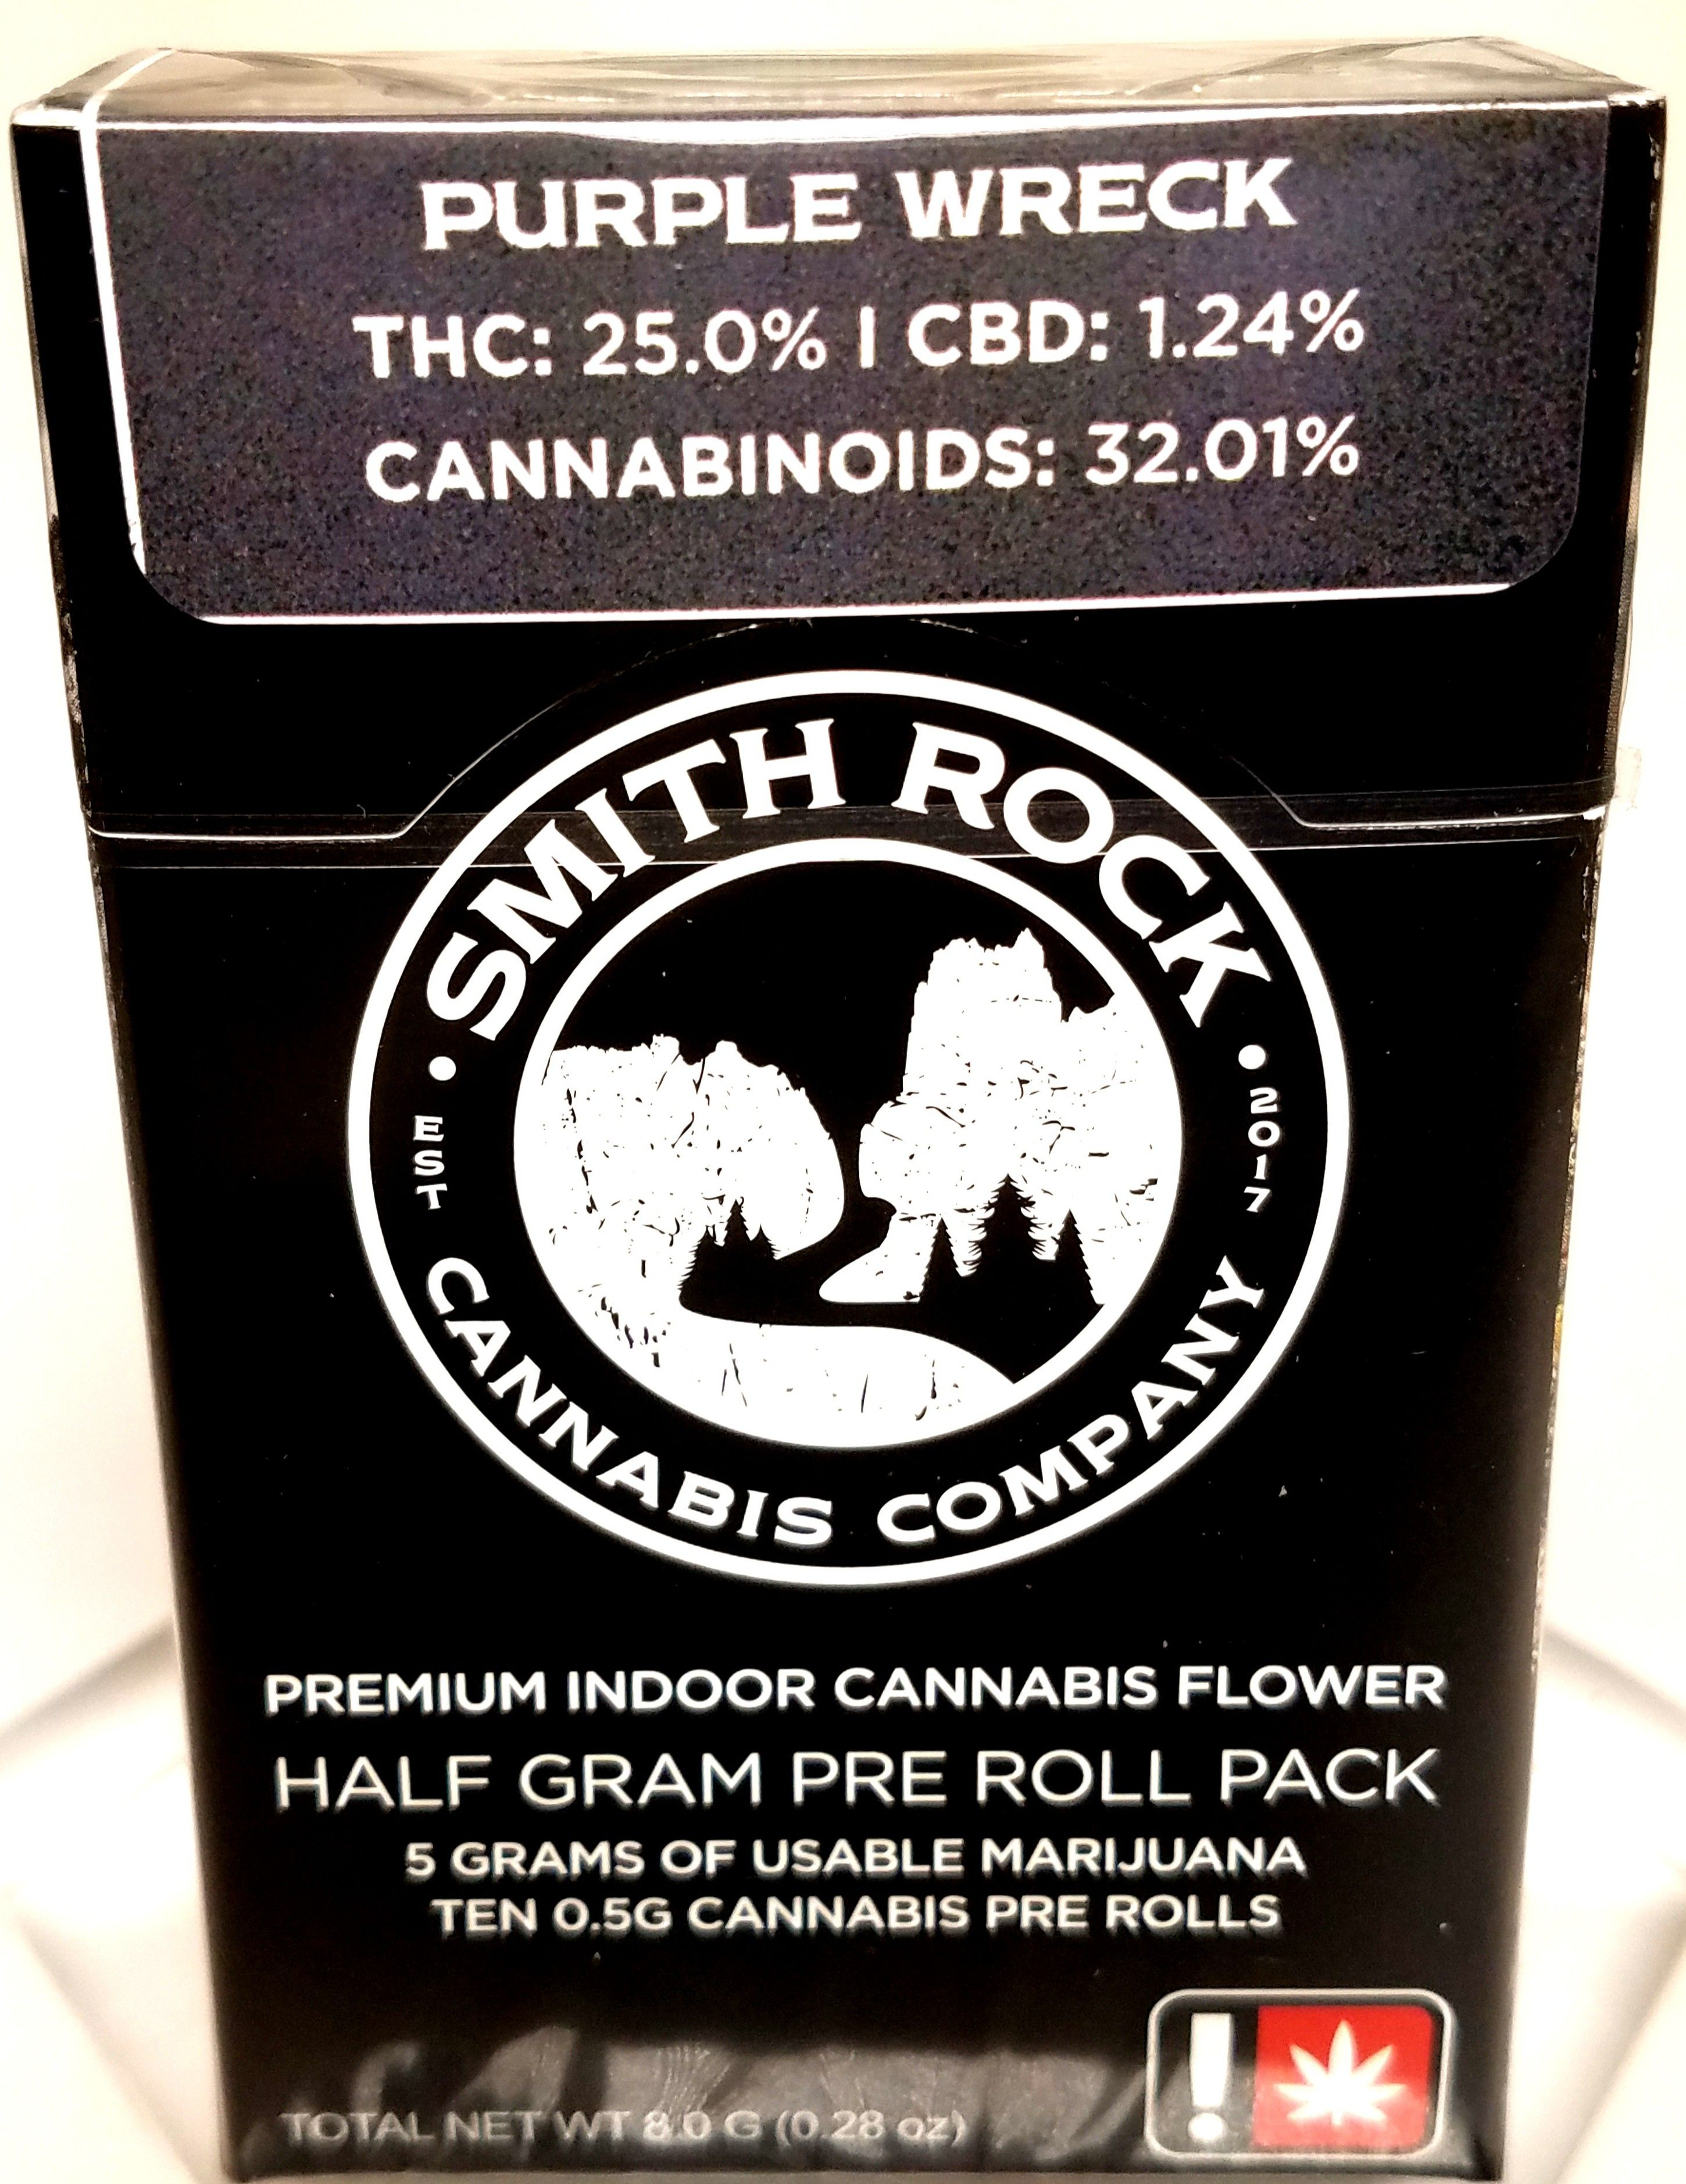 Smith Rock Cannabis Company - Purple Wreck, Hybrid, 10 Pack